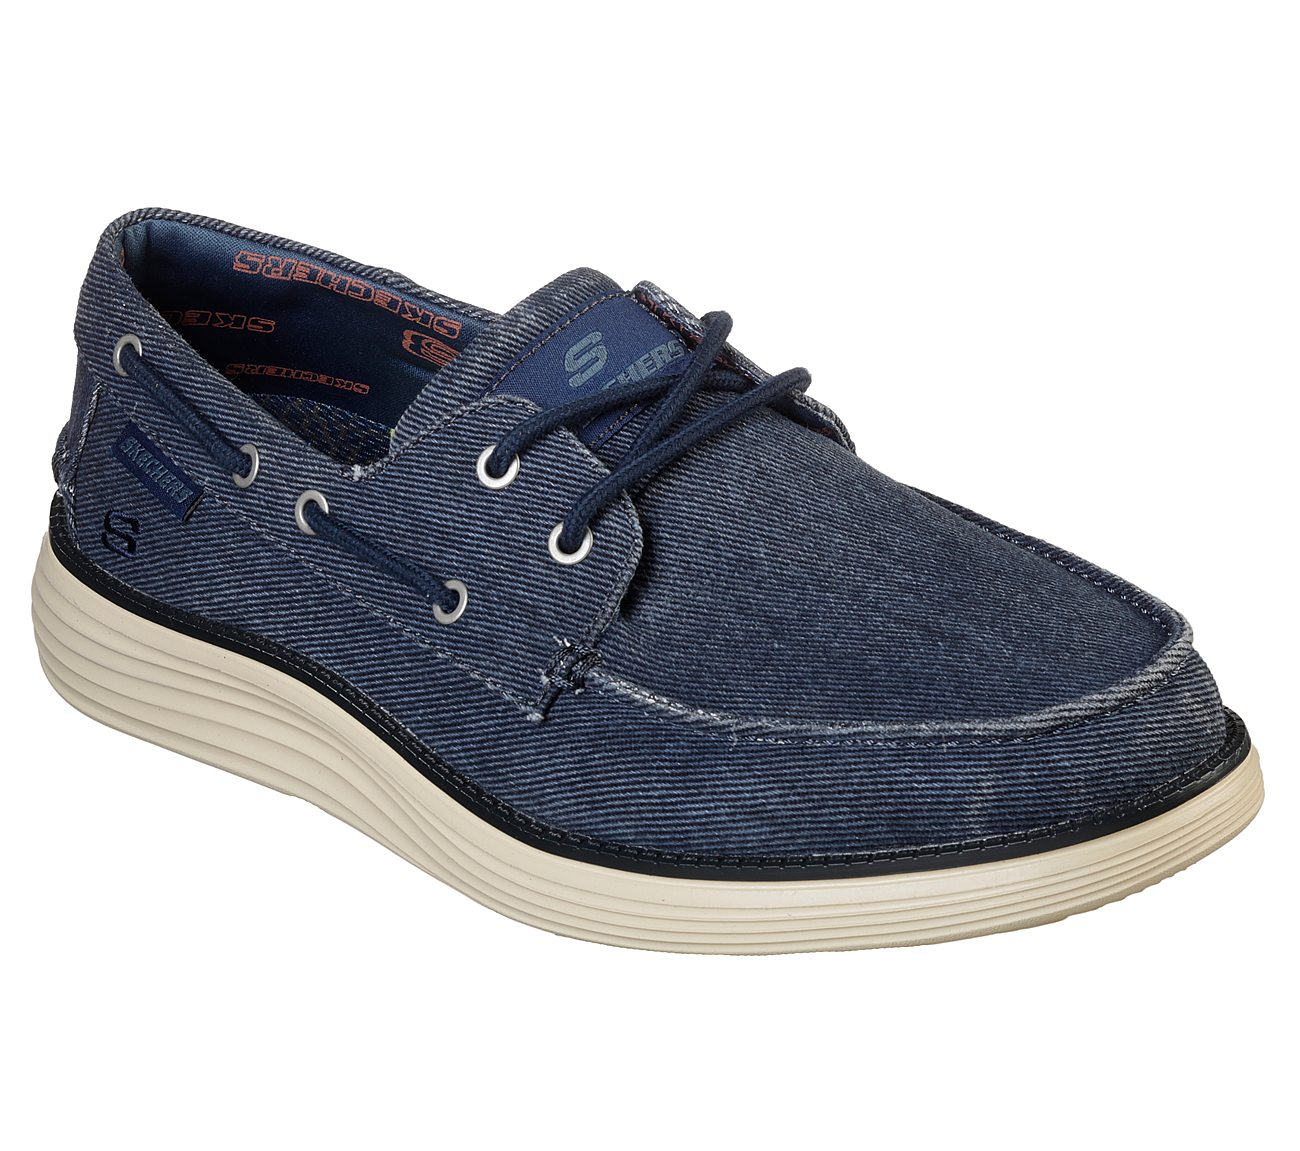 3ca13e8a Buy SKECHERS Status 2.0 - Lorano USA Casuals Shoes only $65.00